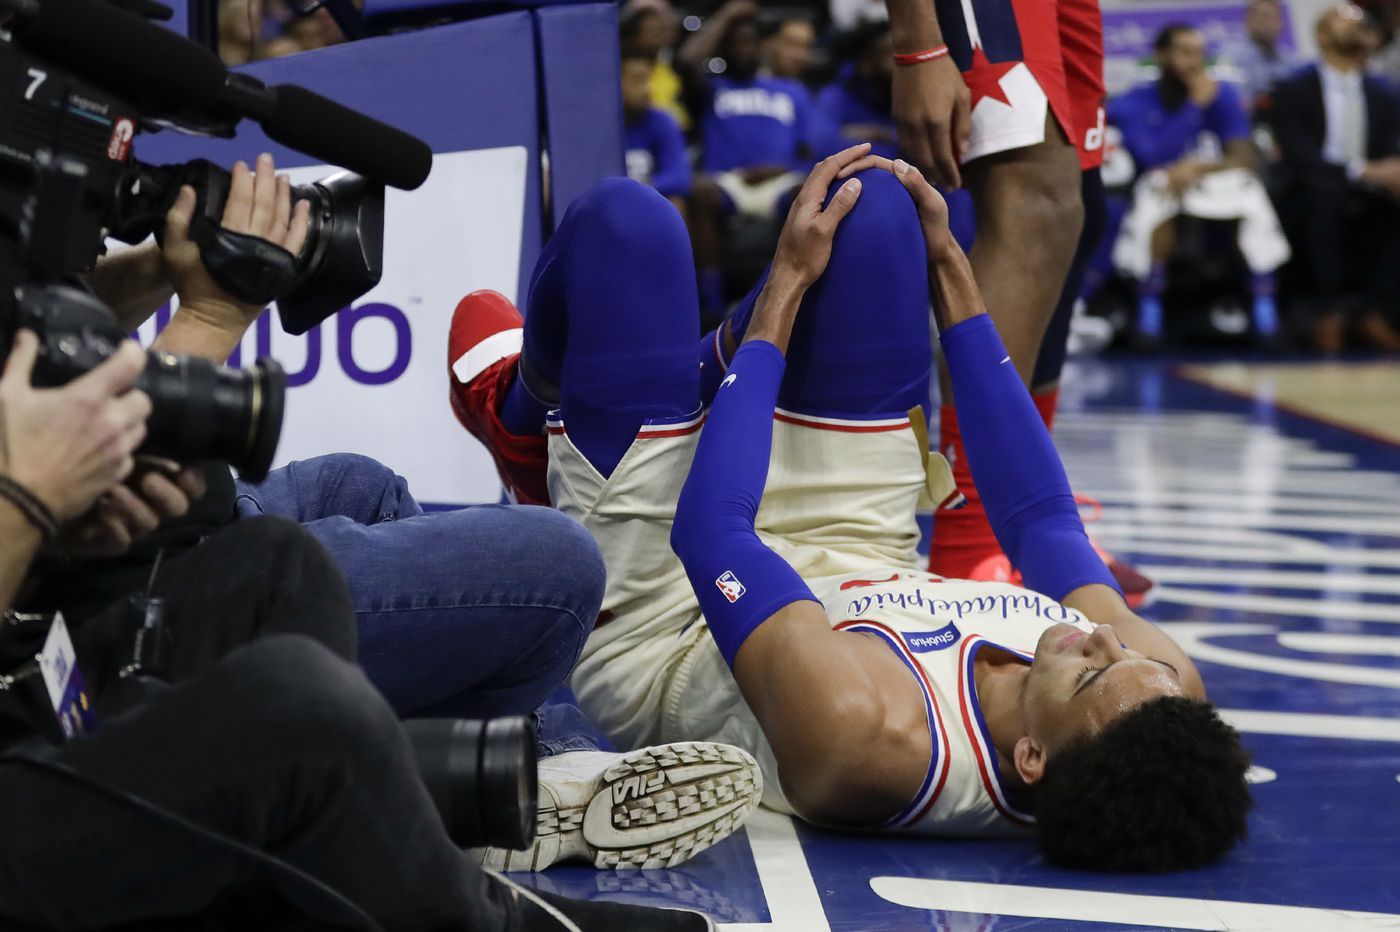 Sixers Matisse Thybulle out indefinitely with a bone bruise and sprain of his right knee